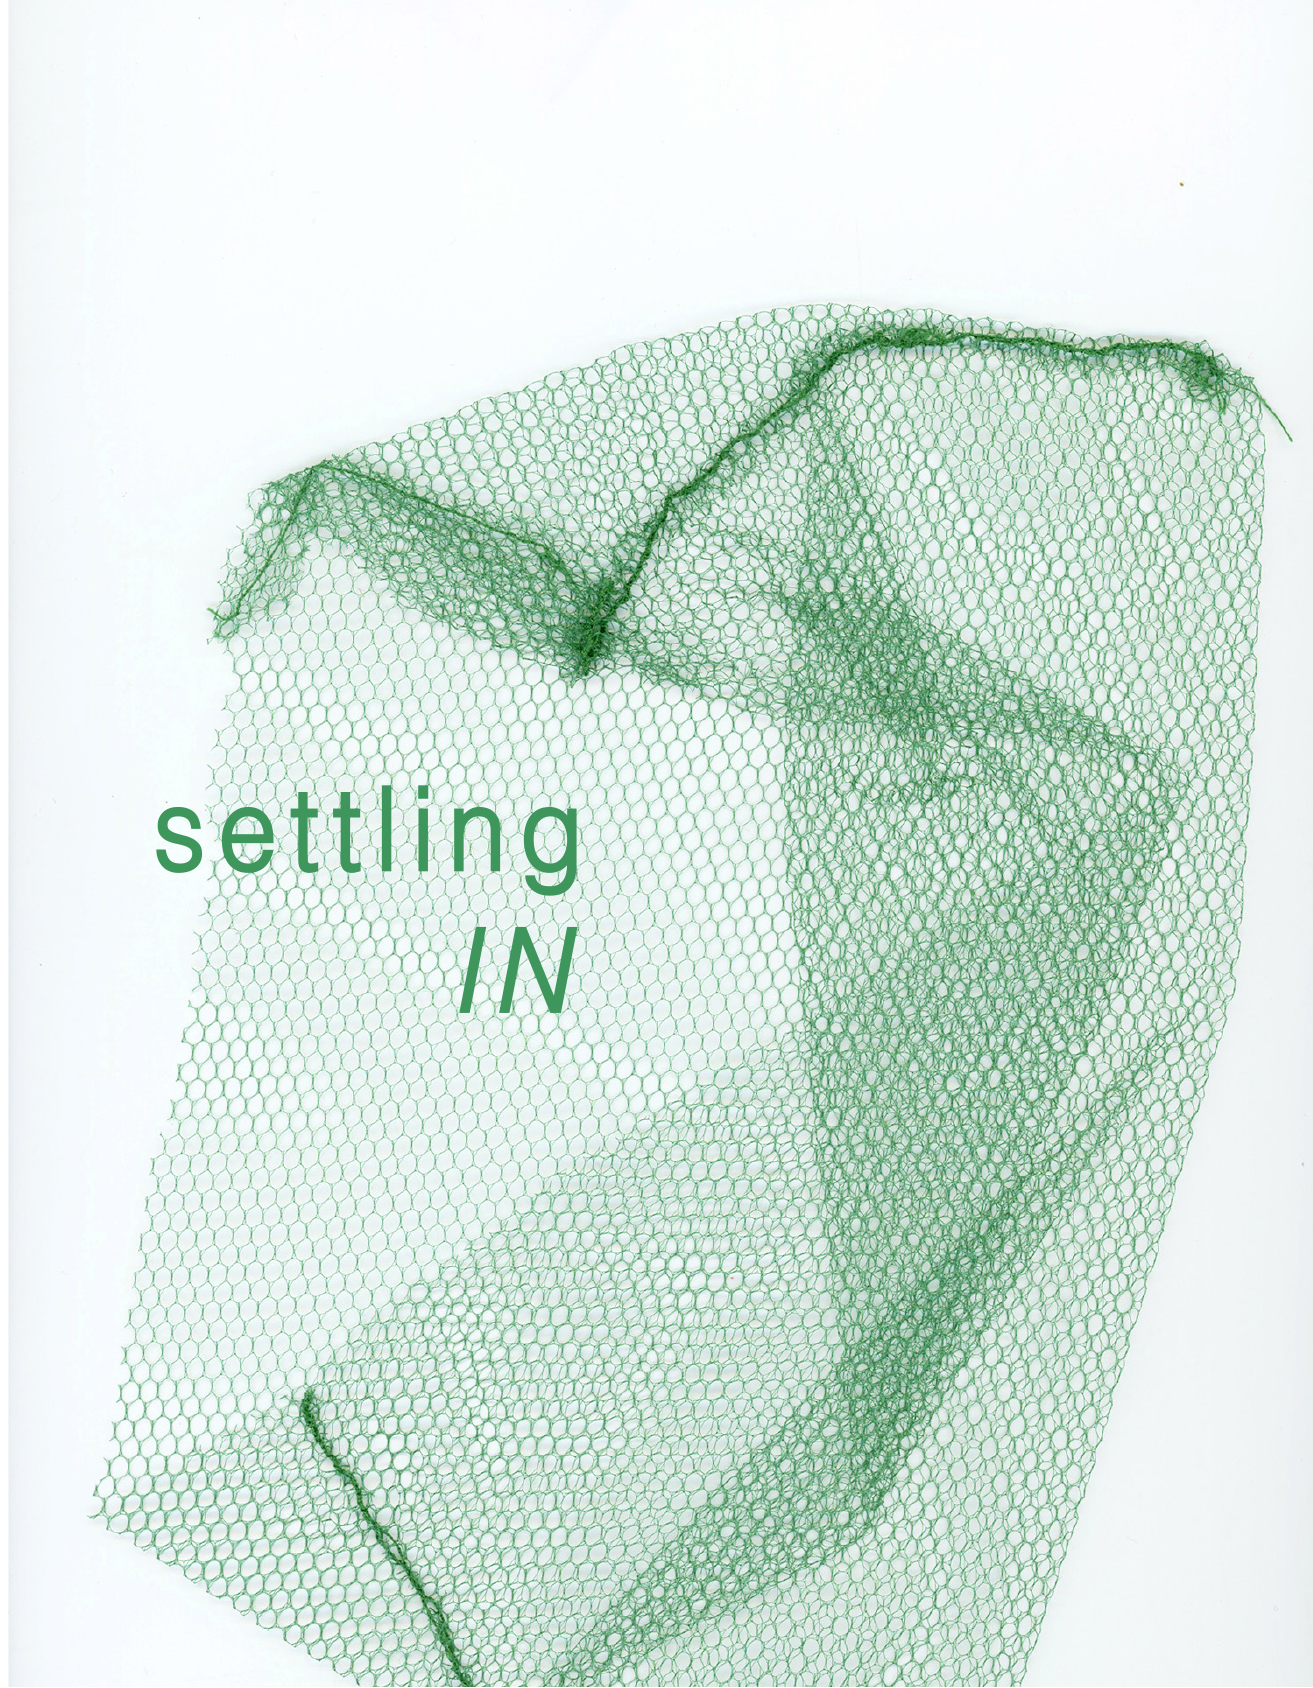 Settling In Cover.jpg